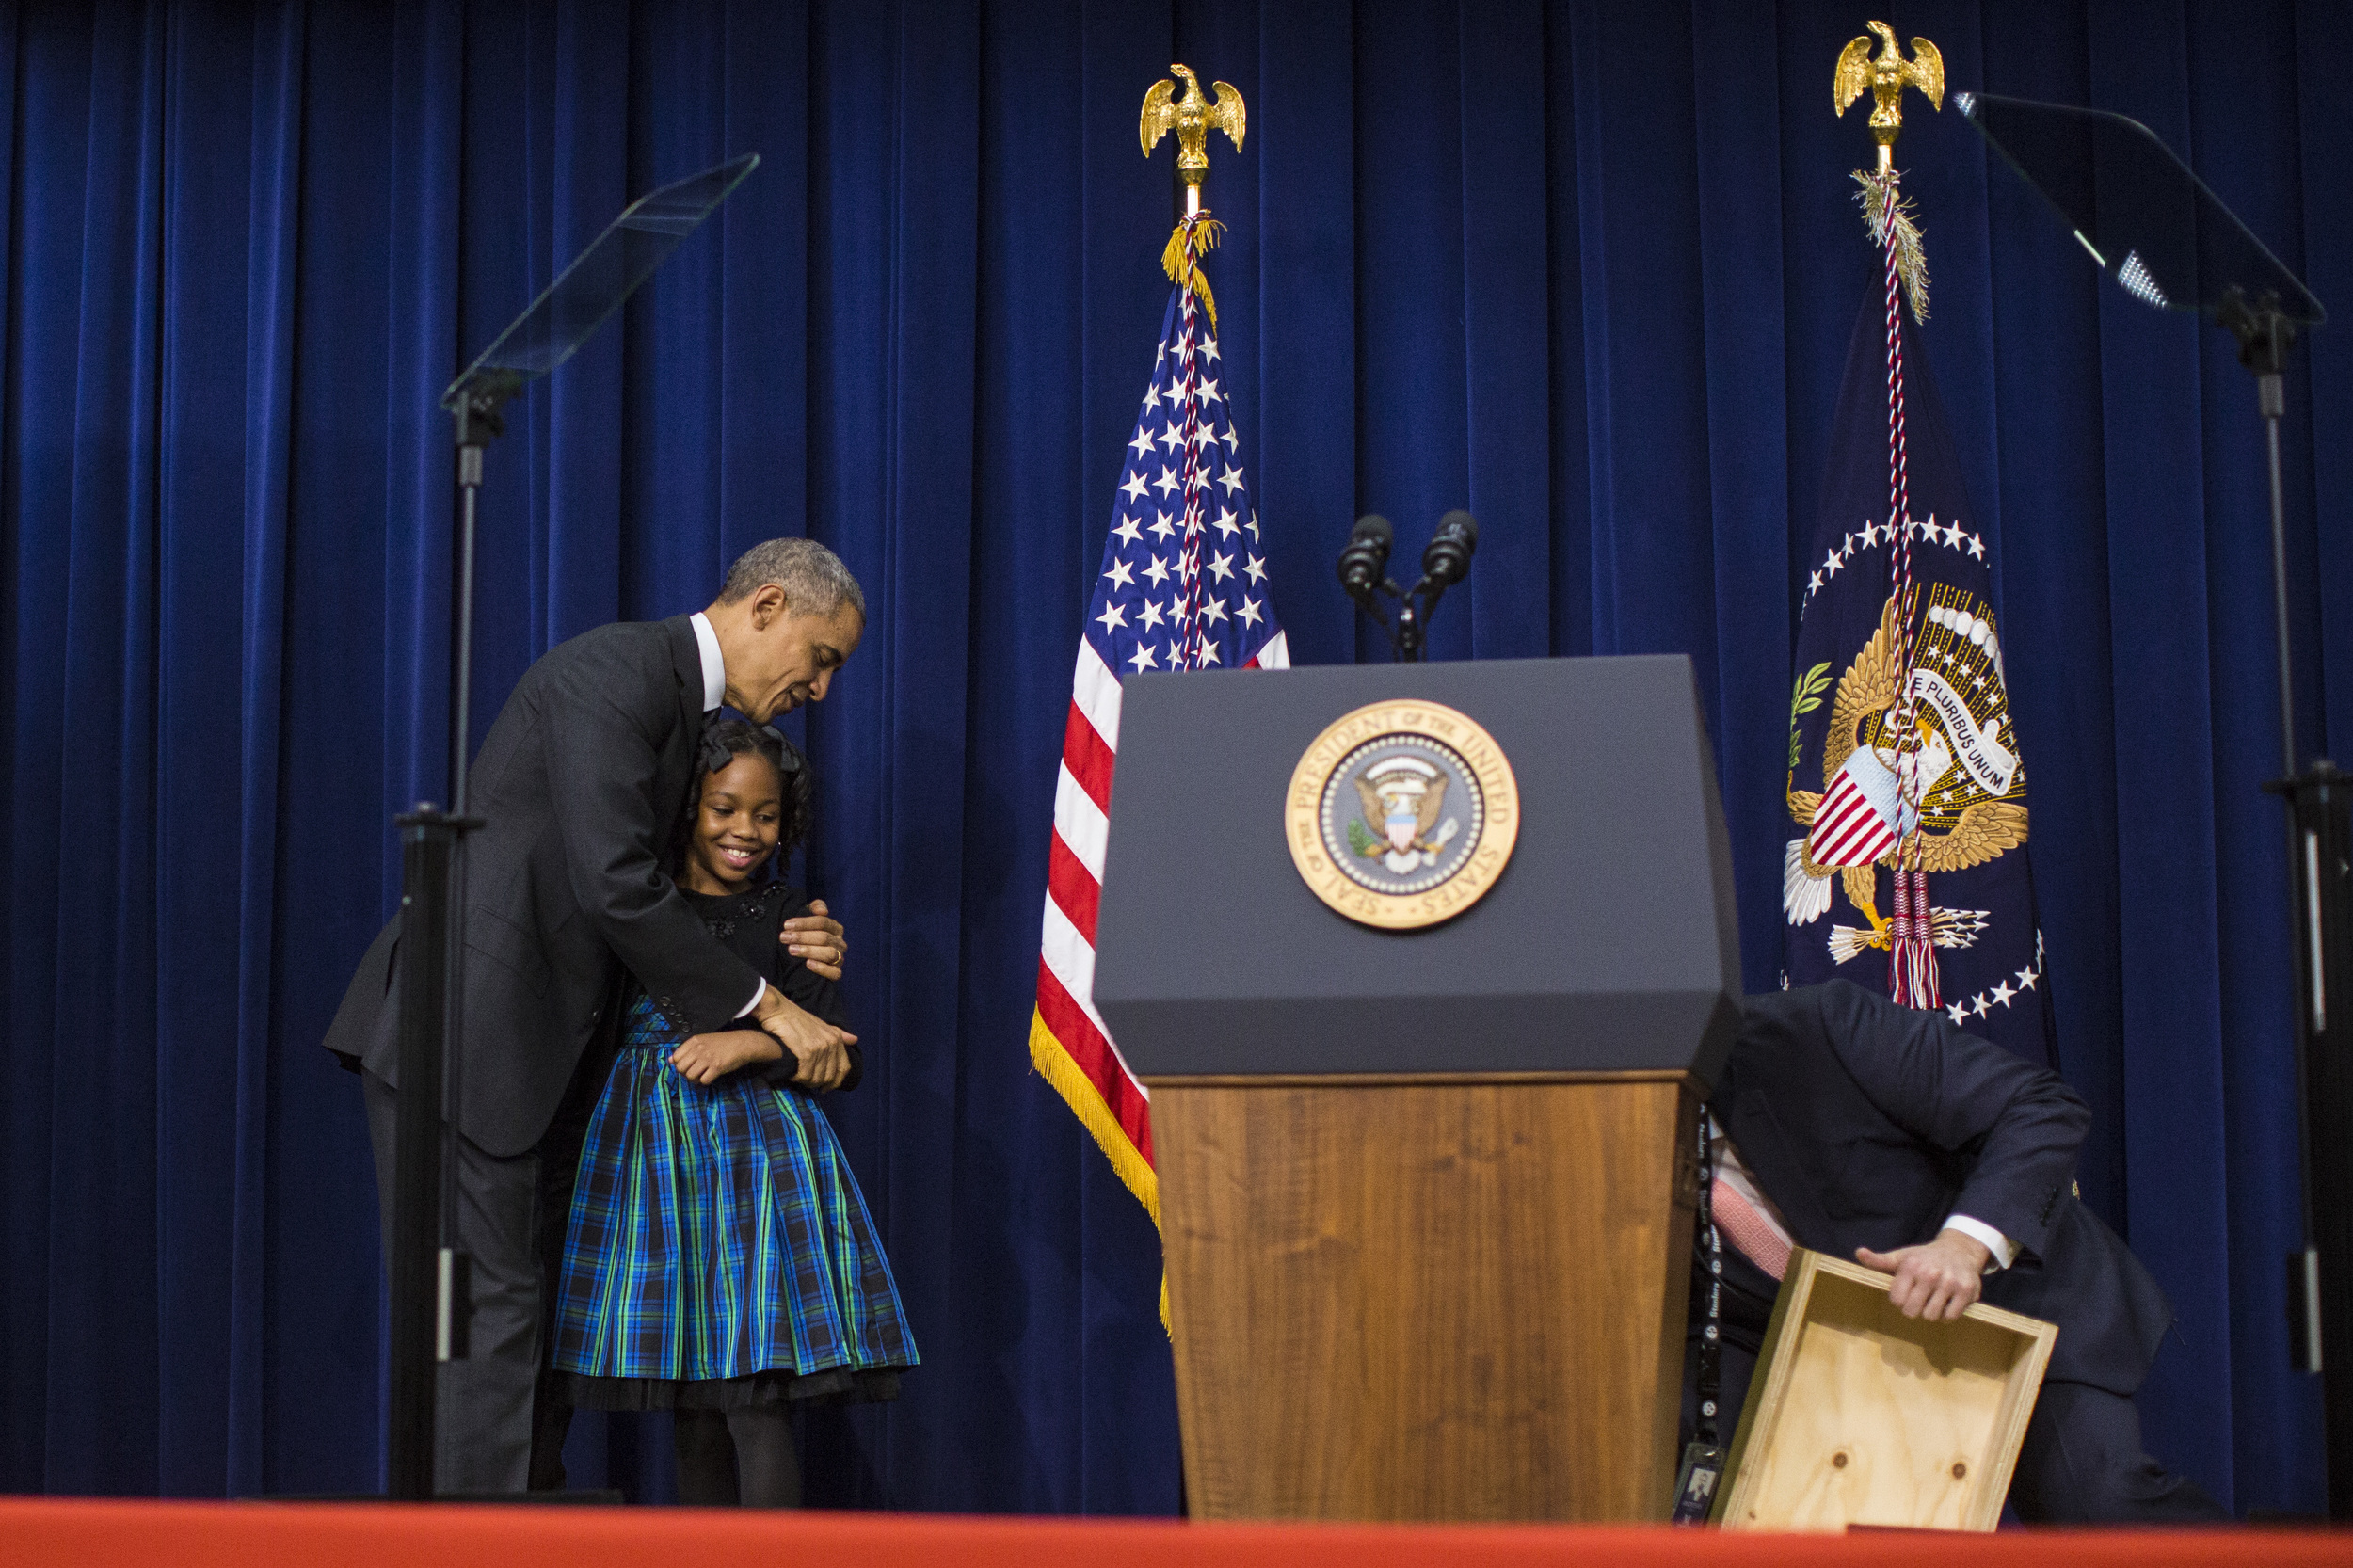 President Barack Obama hugs Alajah Lane, 9, who introduced him, before he speaks to announce new efforts to enhance and expand the reach of high-quality public preschool programs in high-need communities as well as highlight new actions by the private, philanthropic, and public sectors to invest in and expand access to high-quality early learning opportunities in communities across the country at the White House Summit on Early Education in the South Court Auditorium of the Eisenhower Executive Office Building on the White House complex in Washington, DC on Wednesday December 10, 2014. The White House Summit on Early Education is a convening of prominent business leaders, philanthropists, advocates, elected officials and members of the public committed to the expansion of  high-quality early education opportunities for children across the country from birth through school entry.